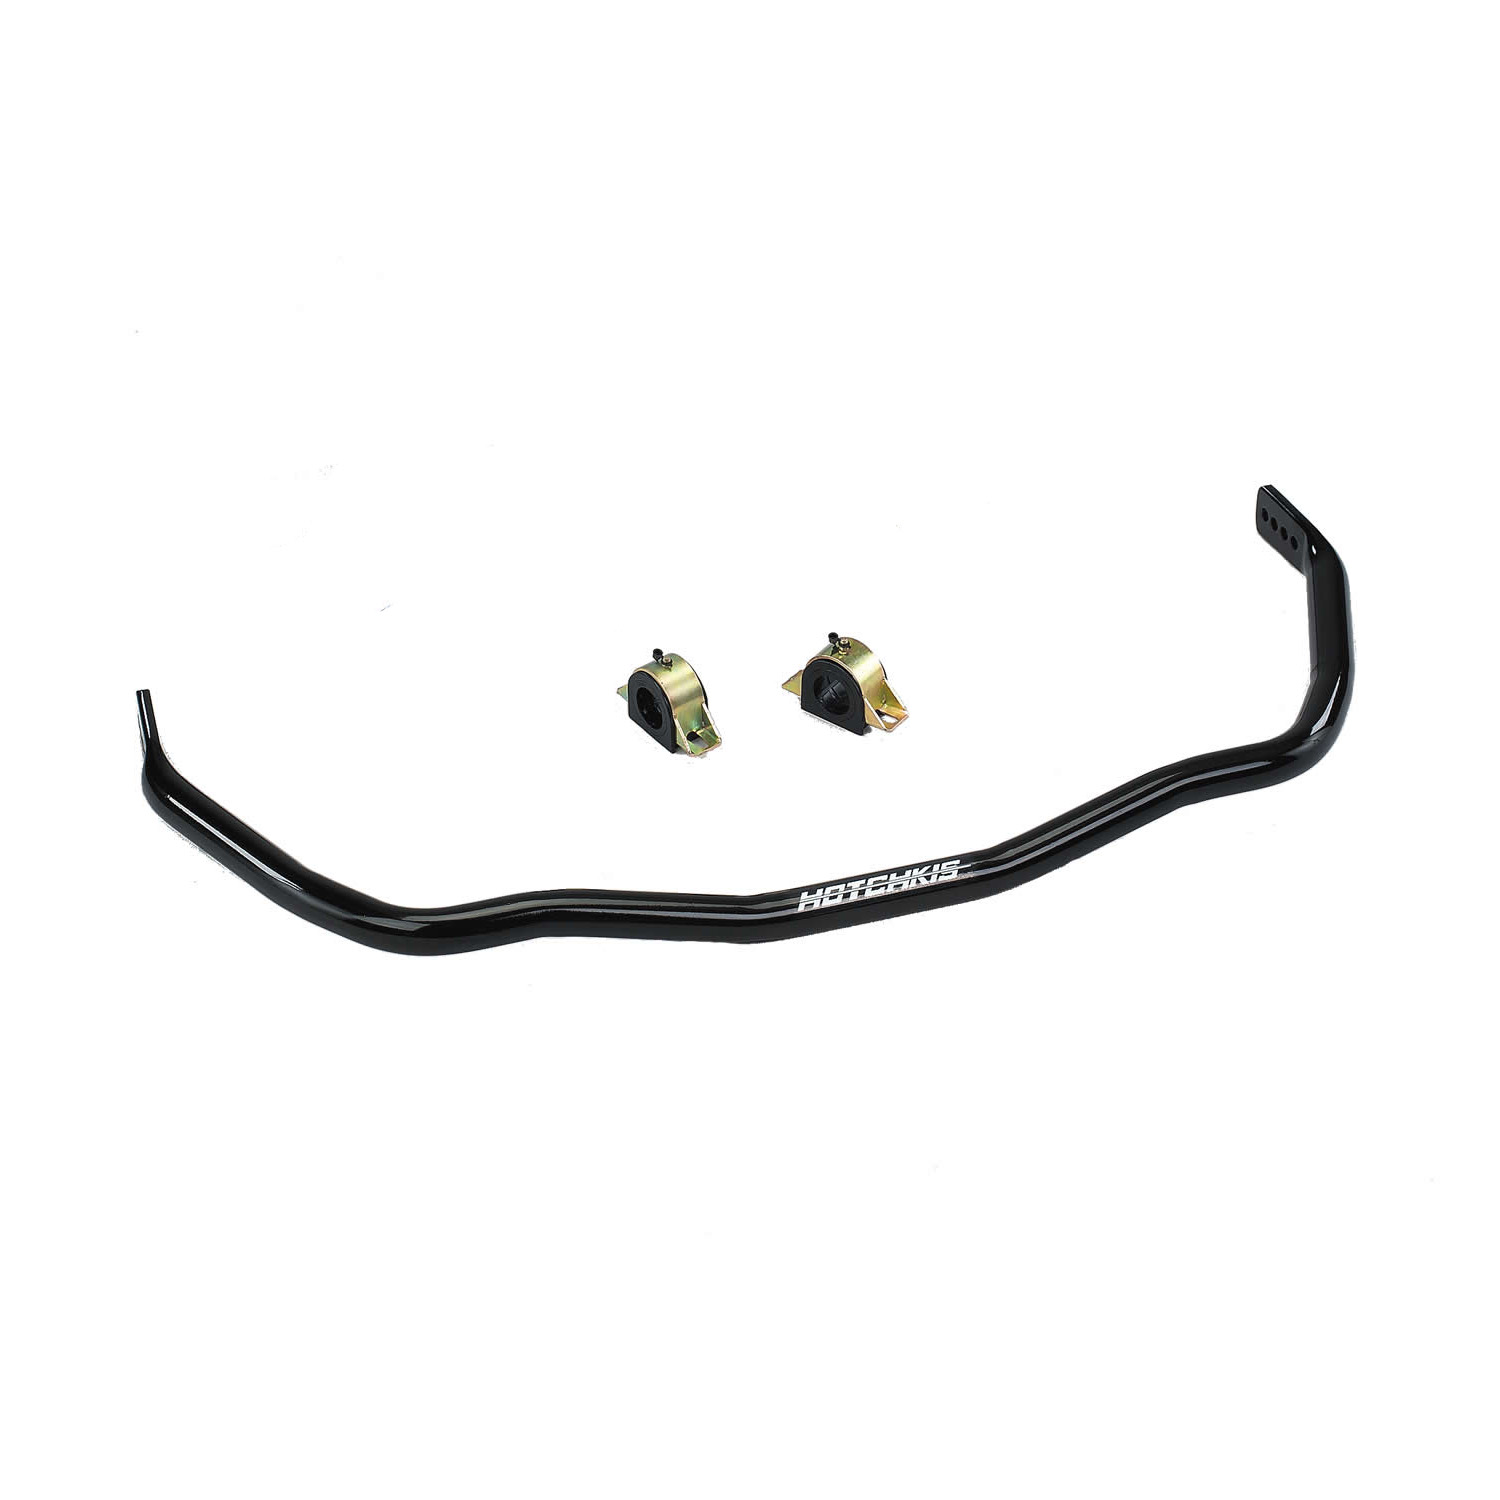 2005-2014 Mustang Sport Front Sway Bar from Hotchkis Sport Suspension